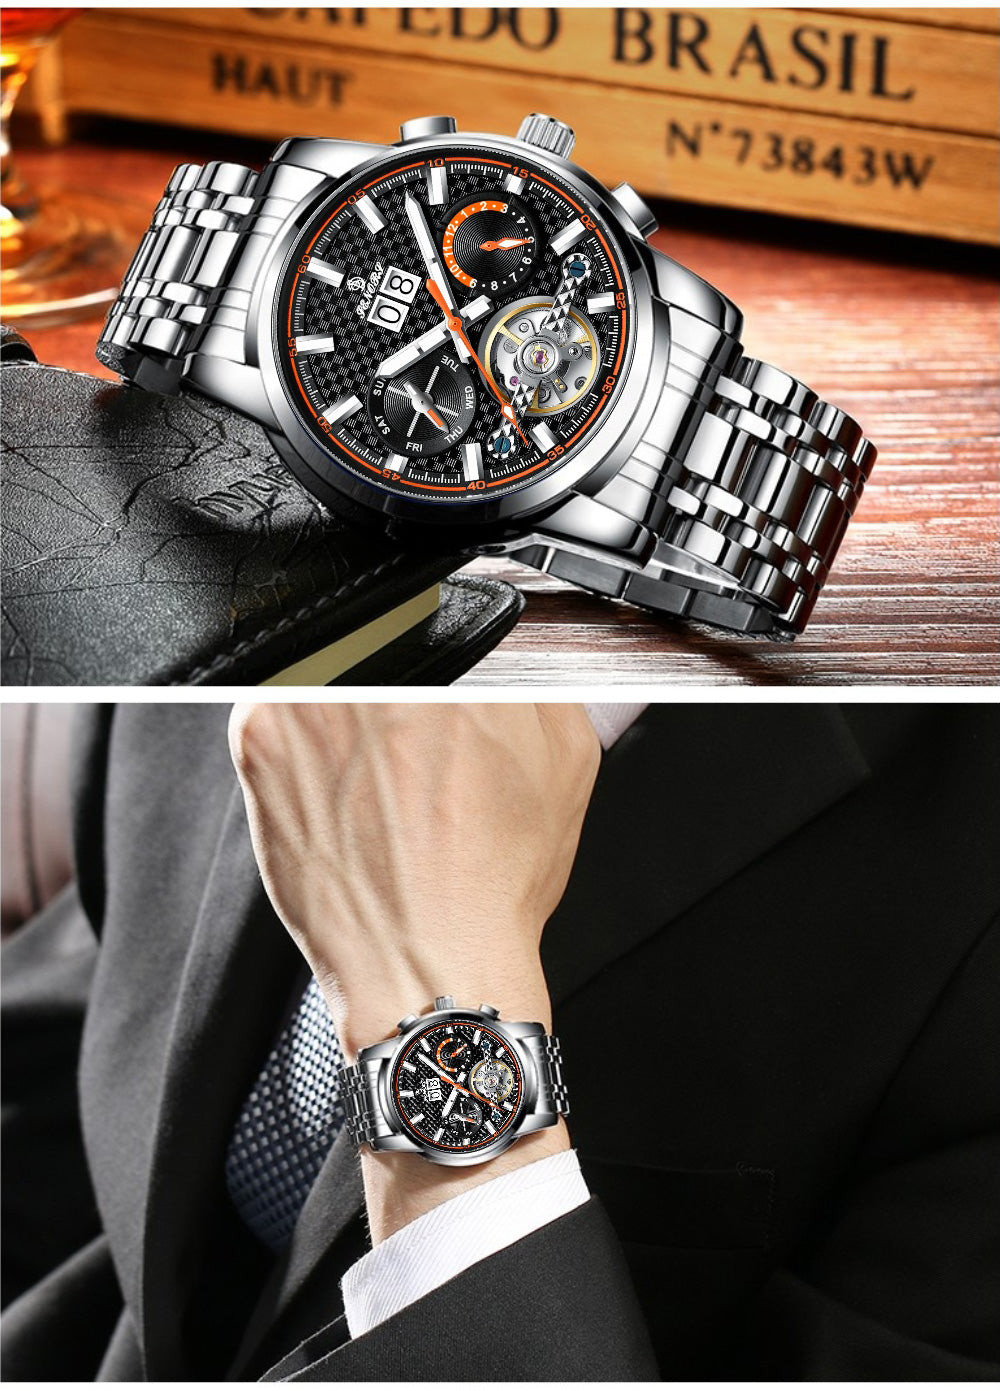 watch with day date and month